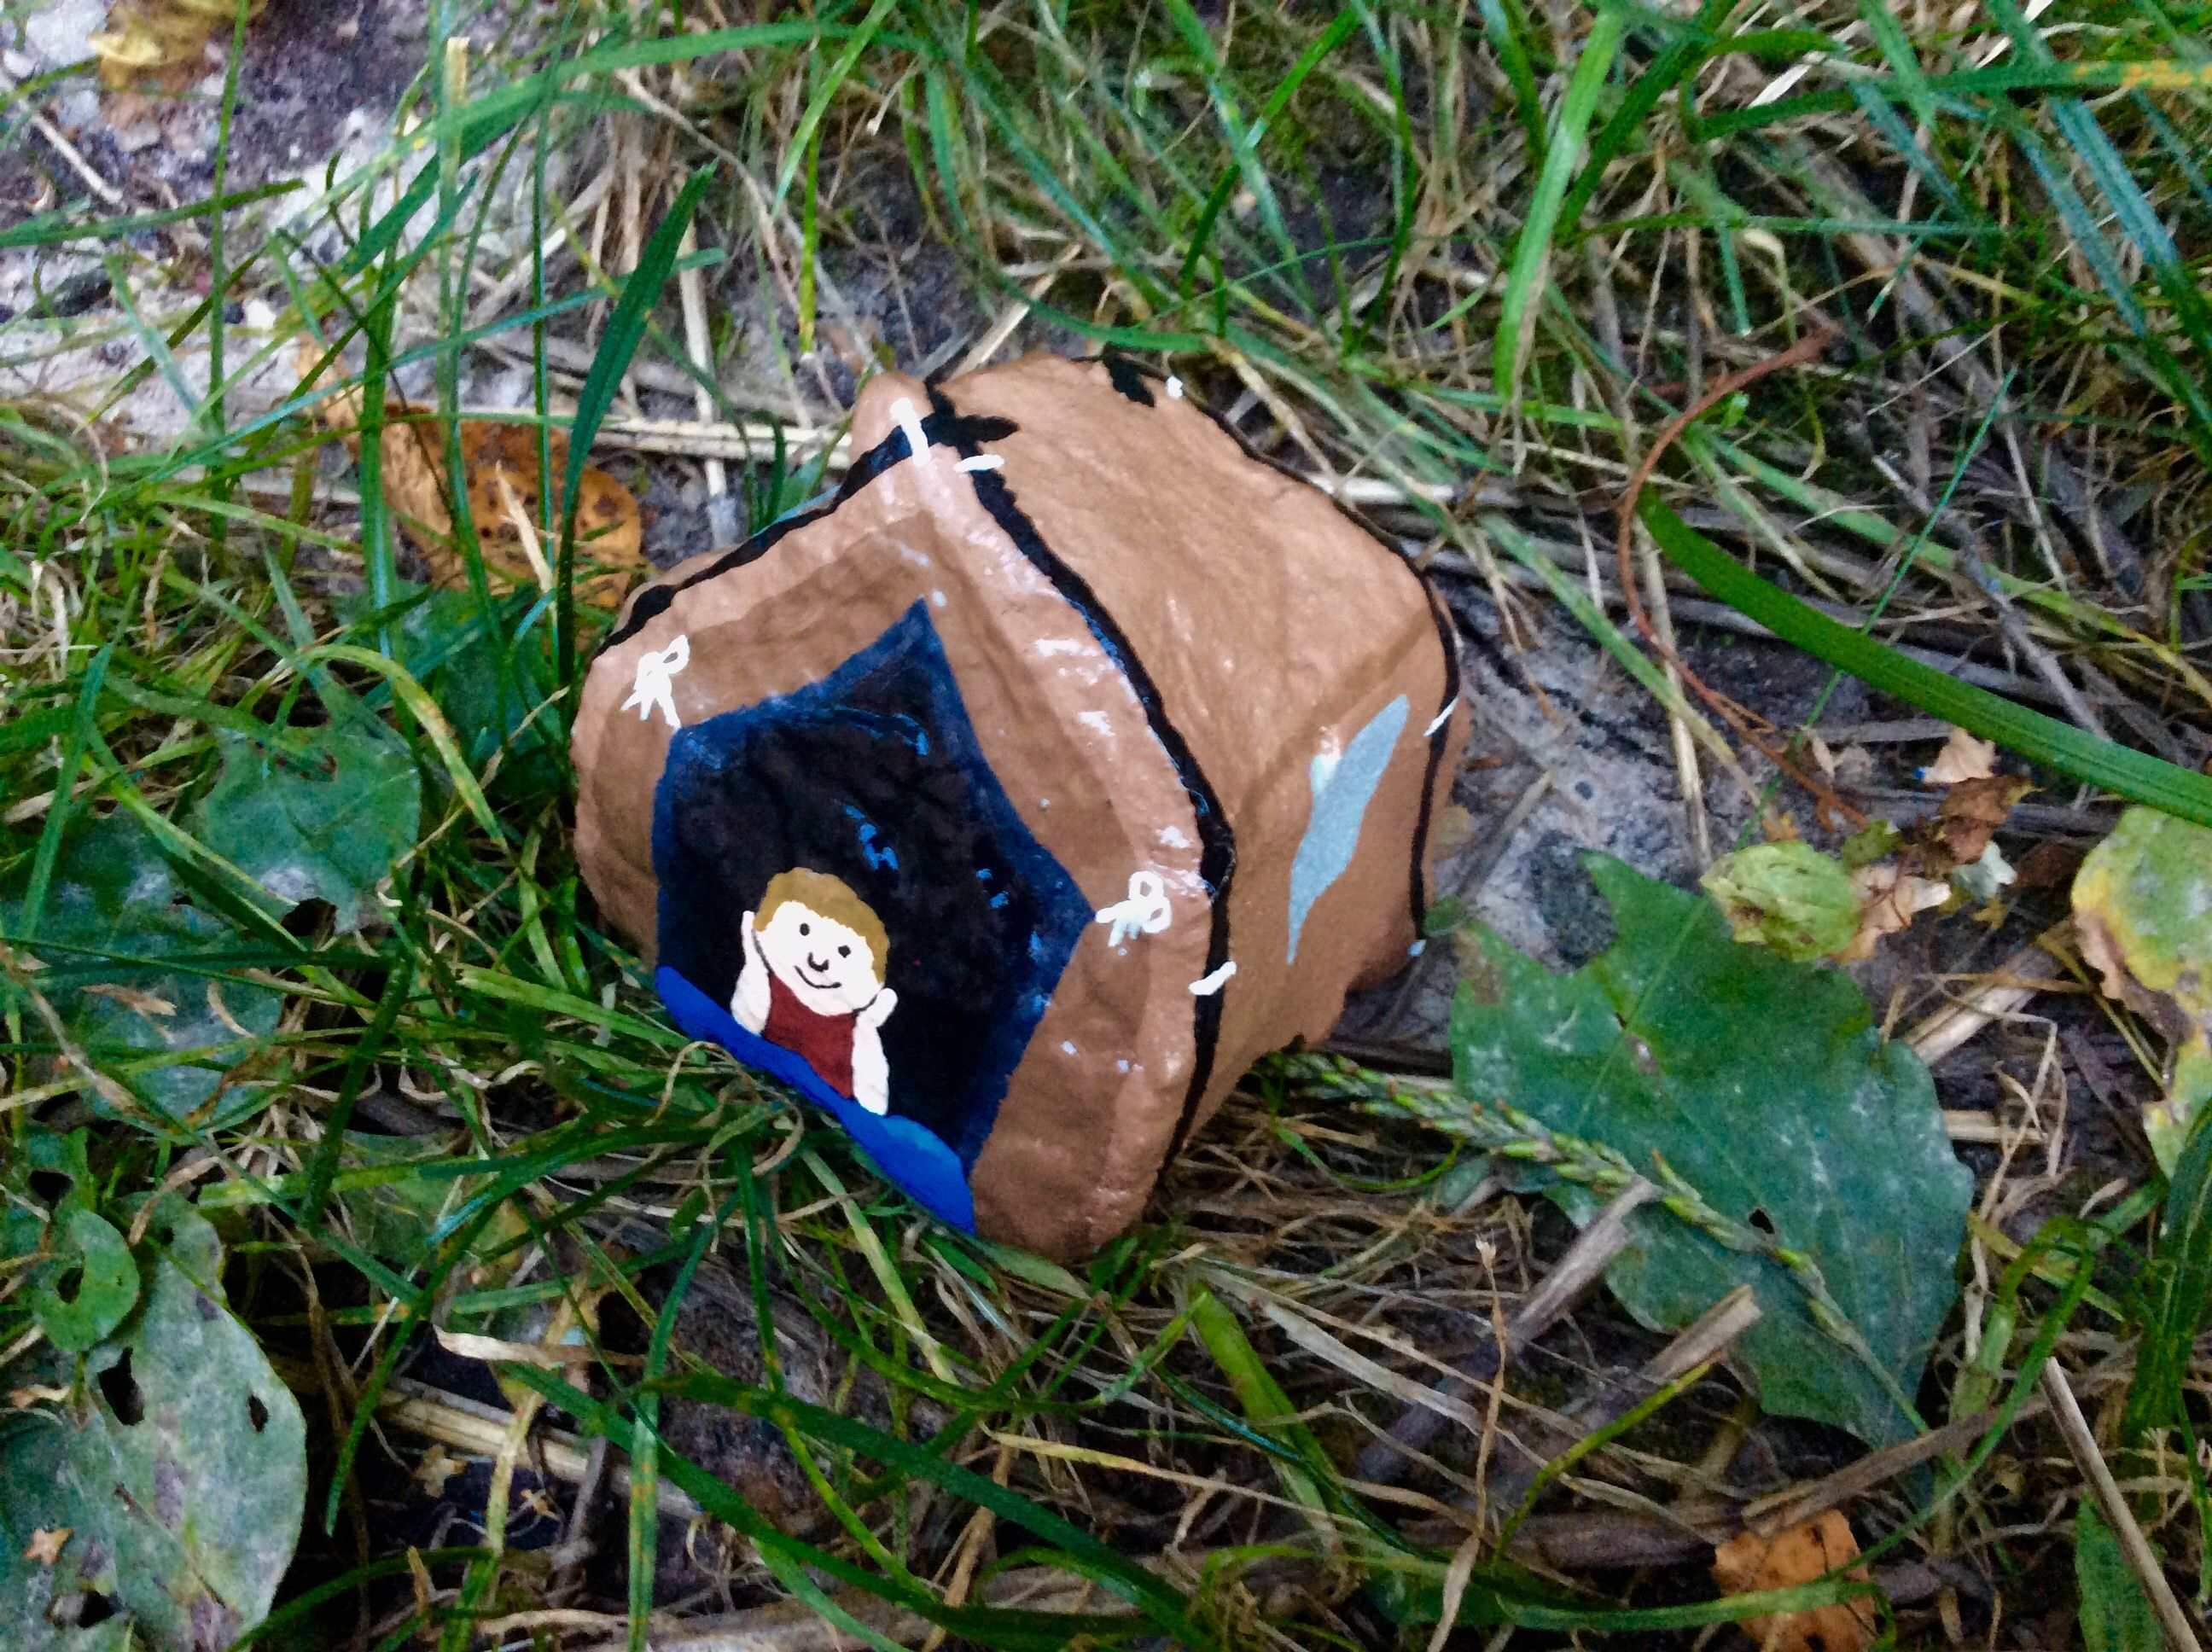 Tent Camping Camp Painted Rocks By Holly N Painted Rocks Kids